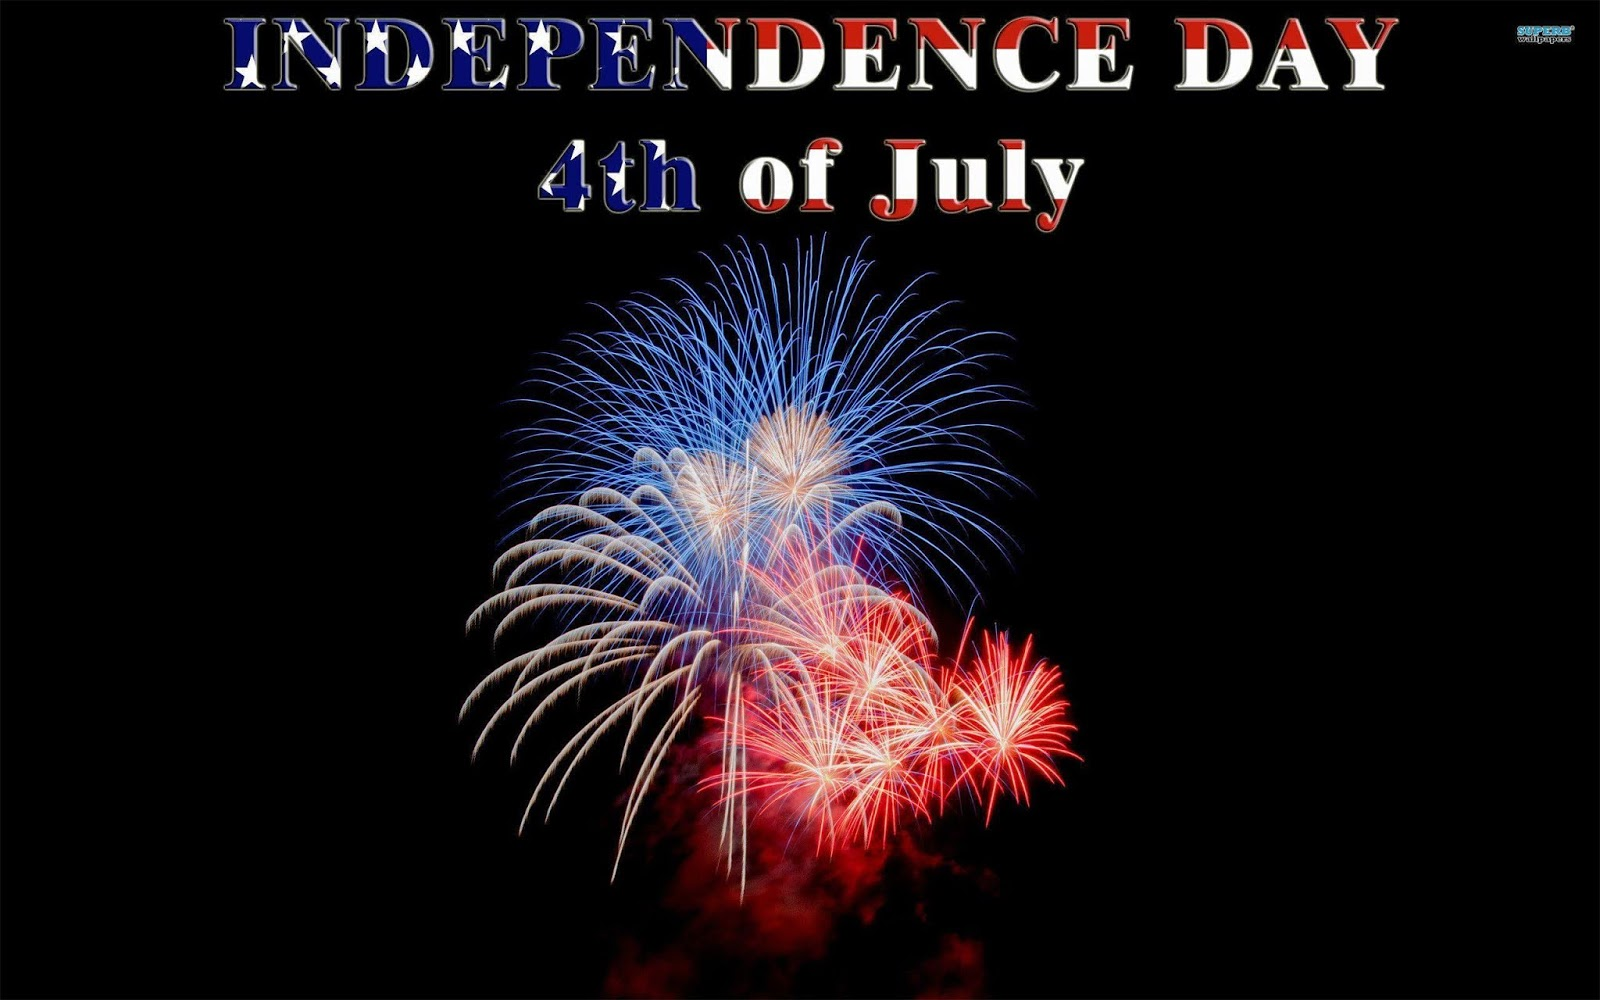 Wallpapers Independence Day 4th Of July HD Wallpapers